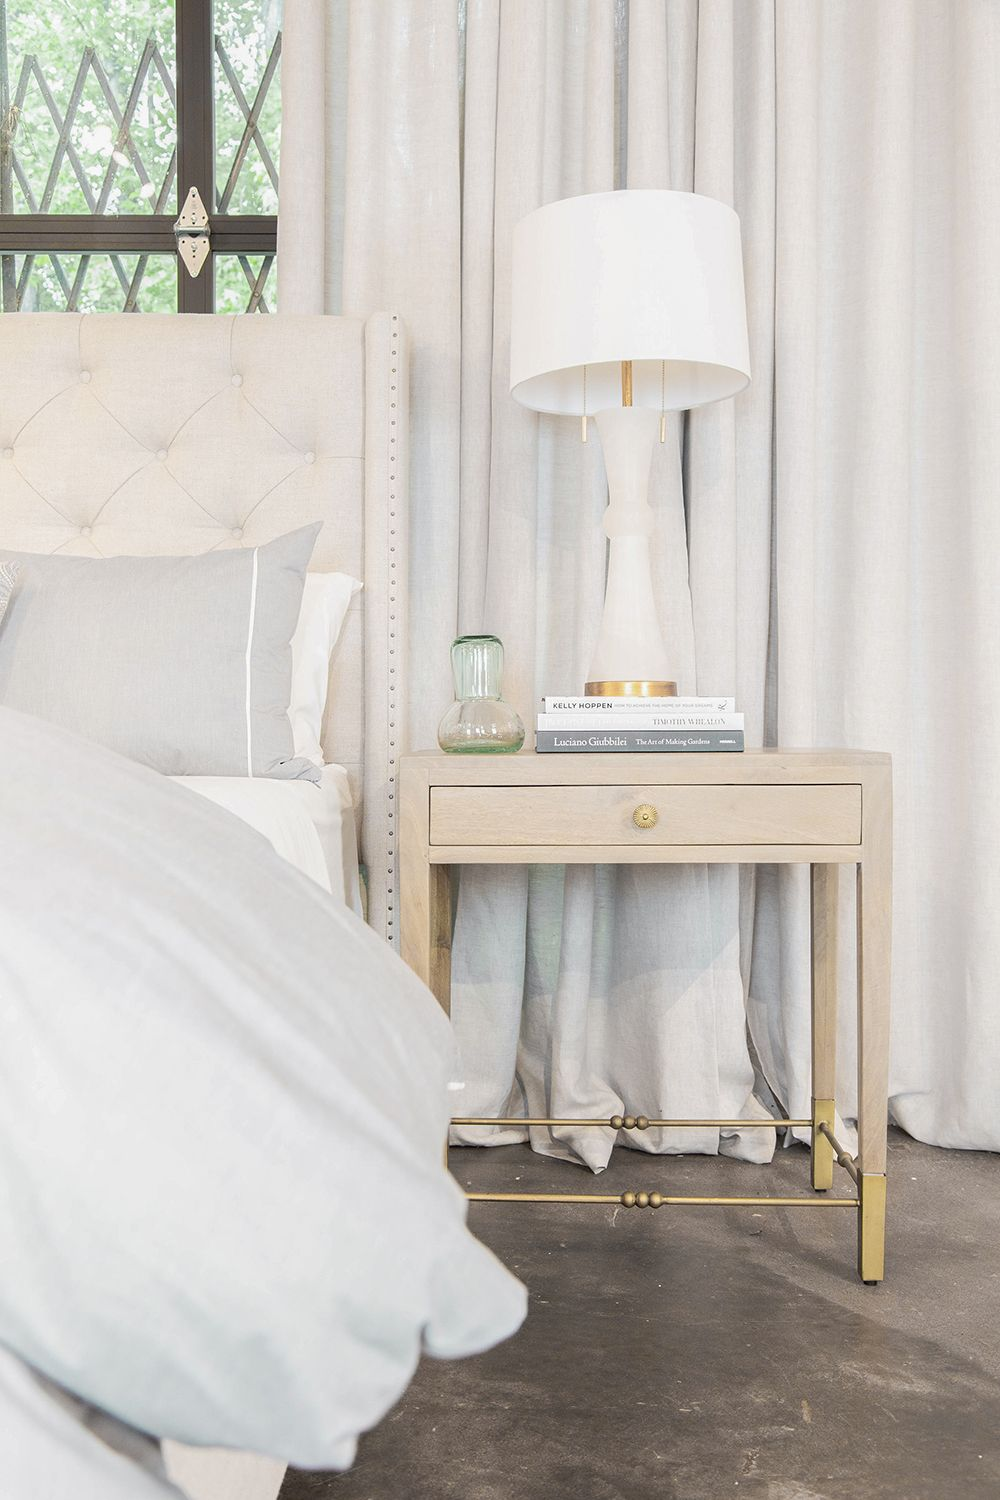 The perfect kind of bedside manner, wouldn't you say?  Introducing one of our newest designs, the Maslyn Side Table. Head over to our website to check our all of our new designs!  #designinspo #furnitureinspo #interiors #homeinspo #myhomedecor #homedeco #furnituredesign #furnishings #furnitureinspo #interiordesire #bedroomfurniture #bedroomstyle #bedroominspo #bedroomdesign